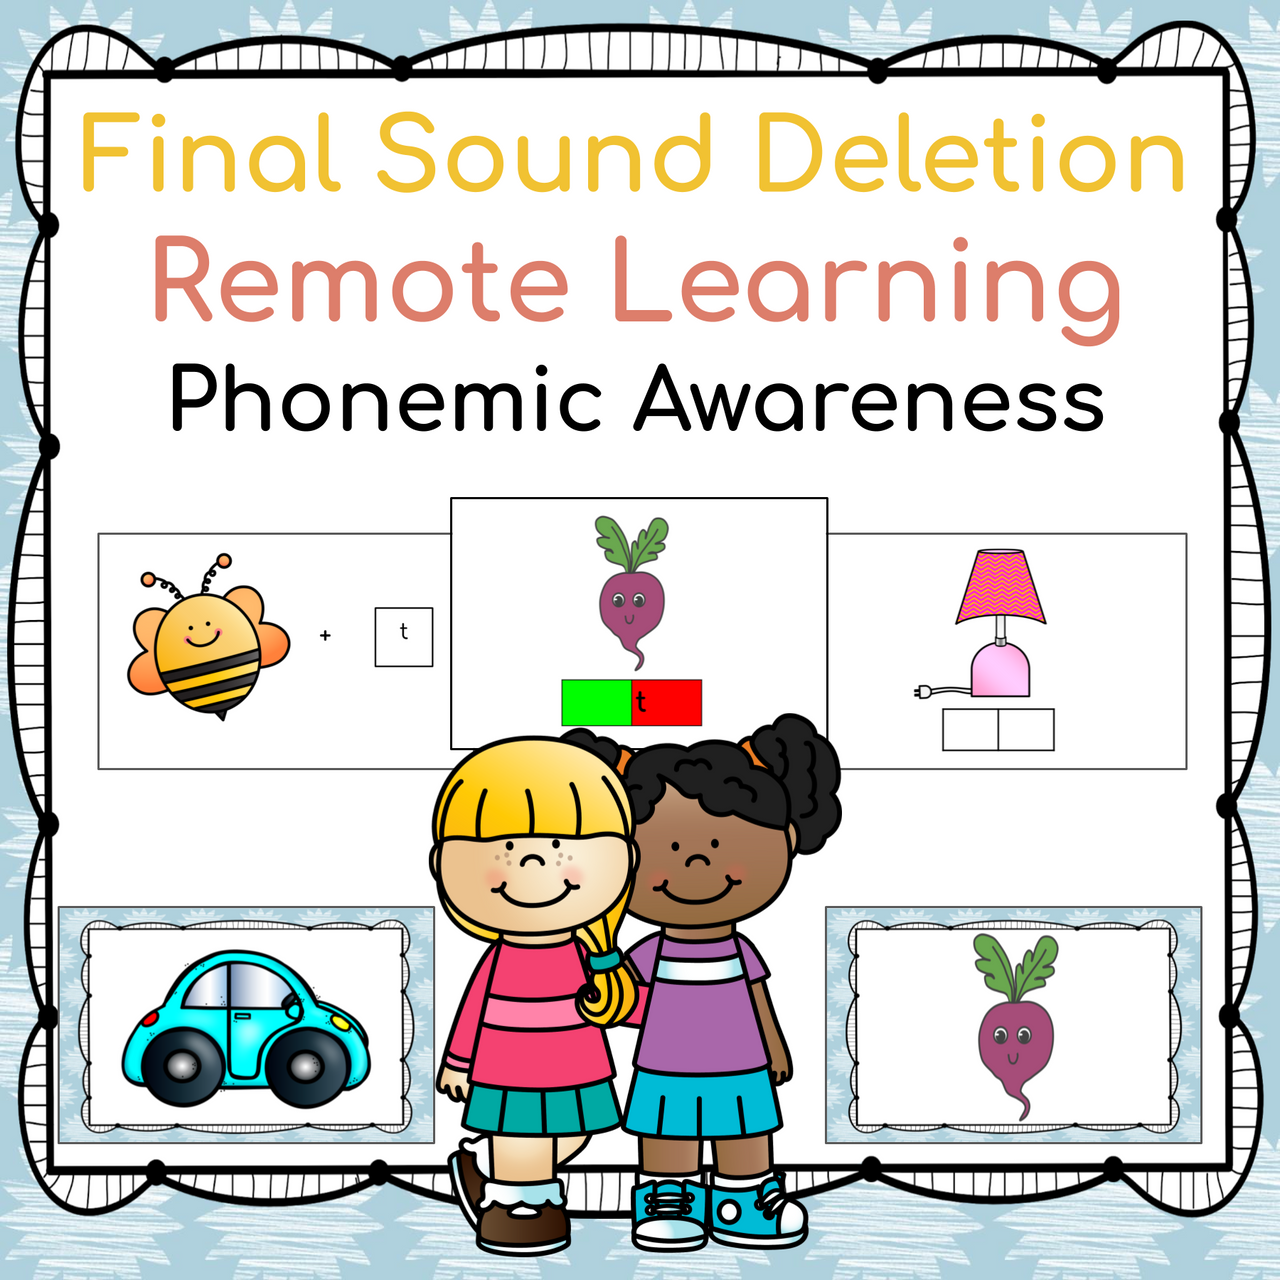 Distance Learning Phonemic Awareness Final Sound Deletion (Remote Ready Resource)